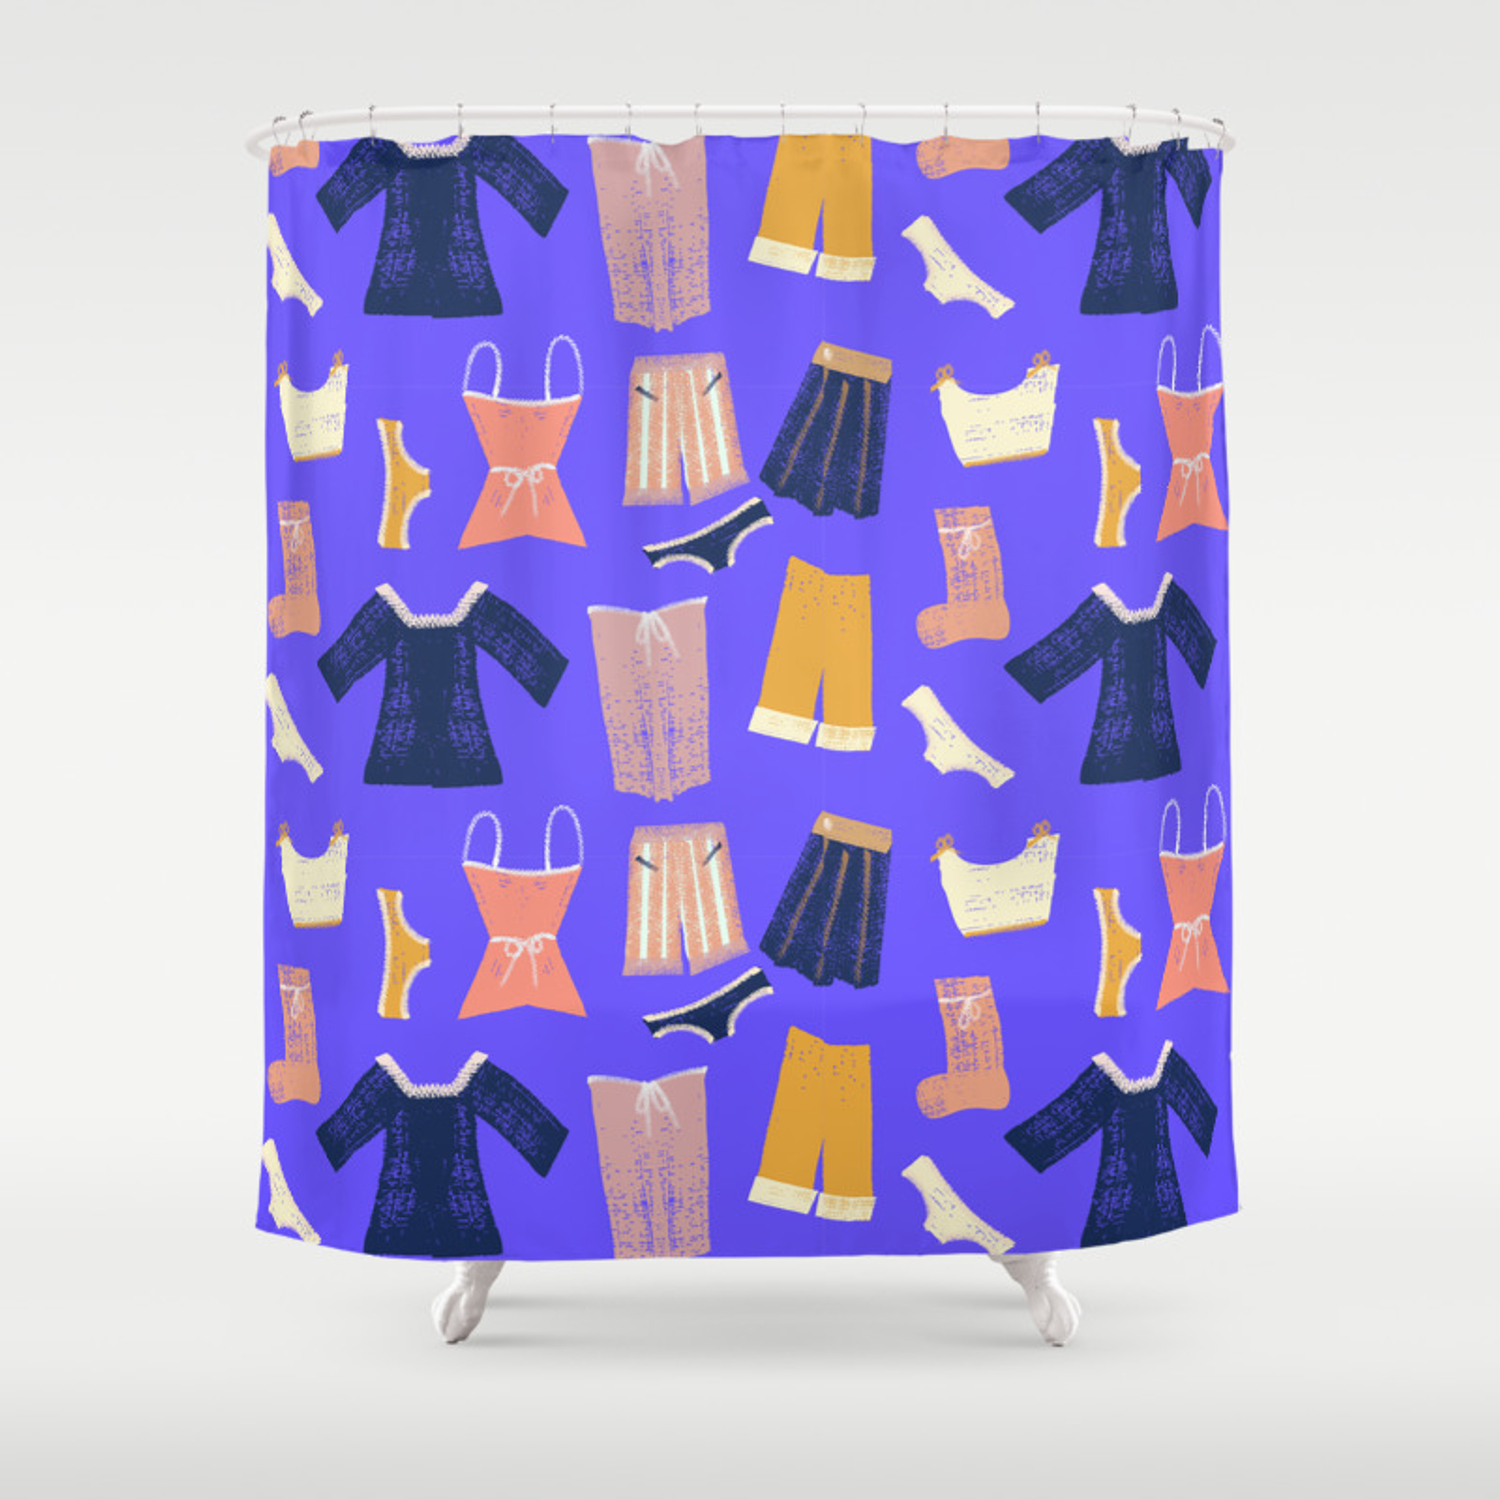 Colorful Hanging Clothes Seamless Pattern Creative And Modern Graphic Design Vibrant Colors Shower Curtain